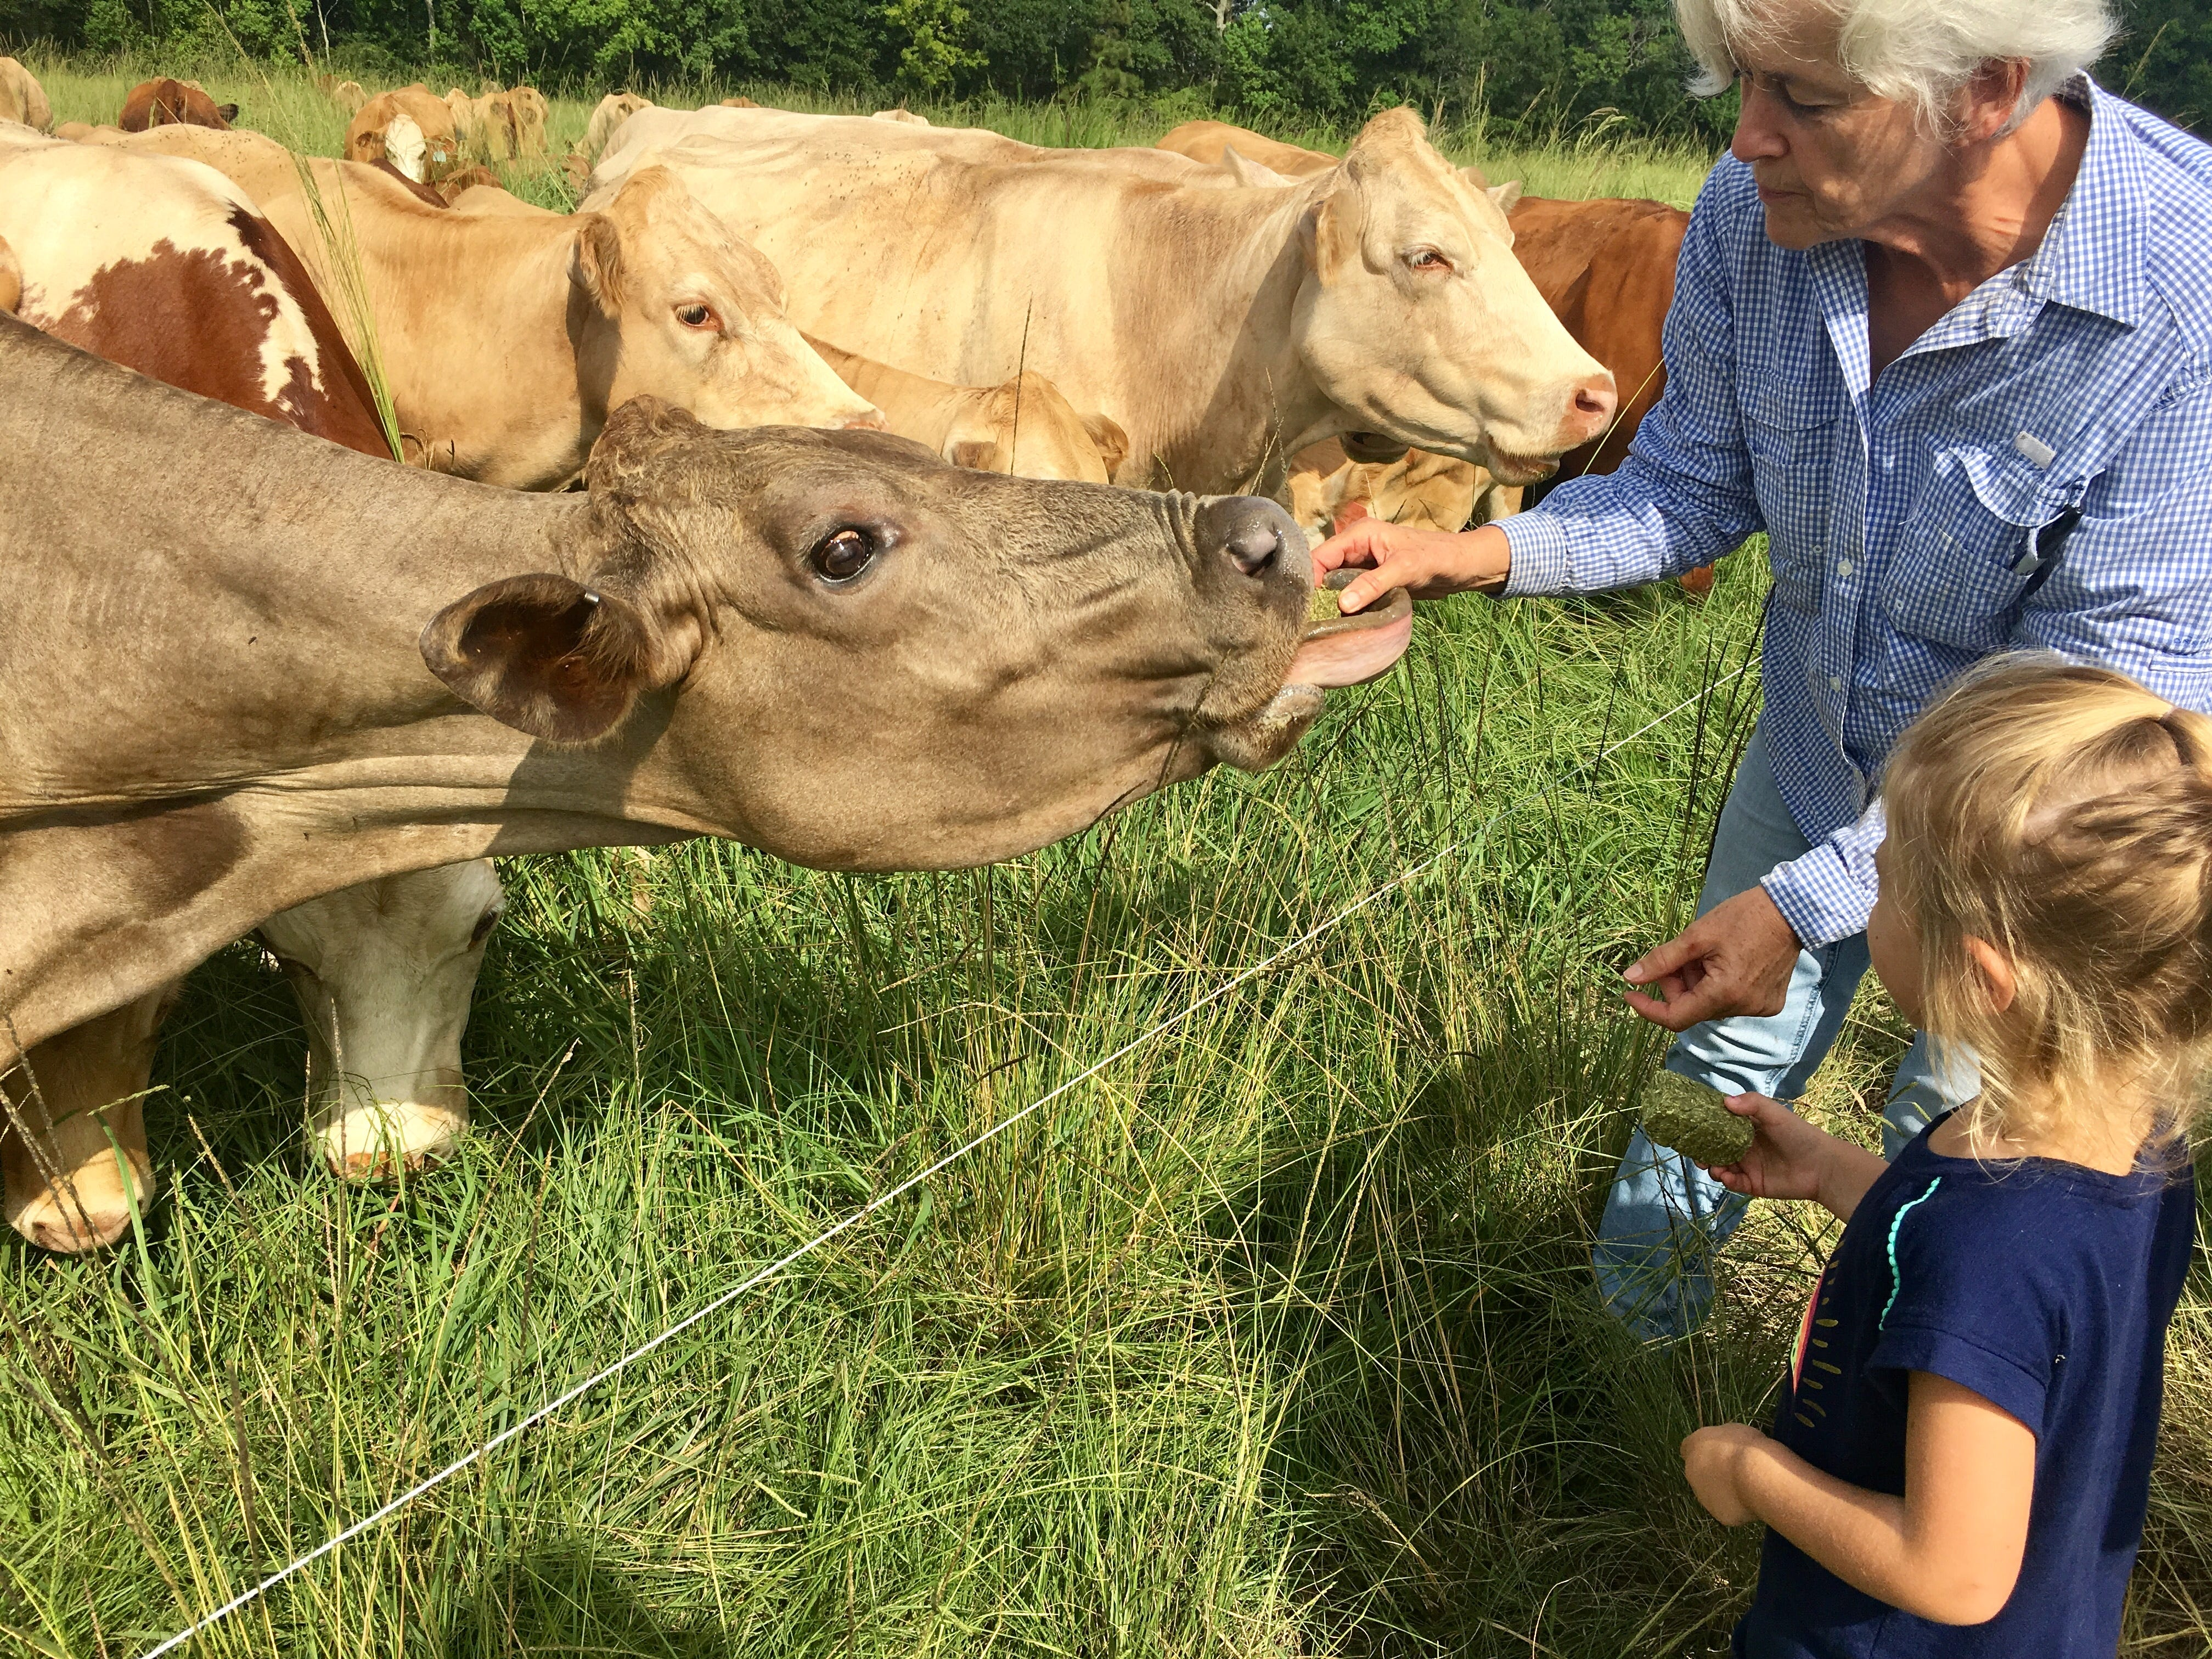 Anne Blanchet helps Avery Guidry, 4, feed grass to Chocolate the cow during a family trip to Brookshire Farm in Abbeville July 20, 2018.